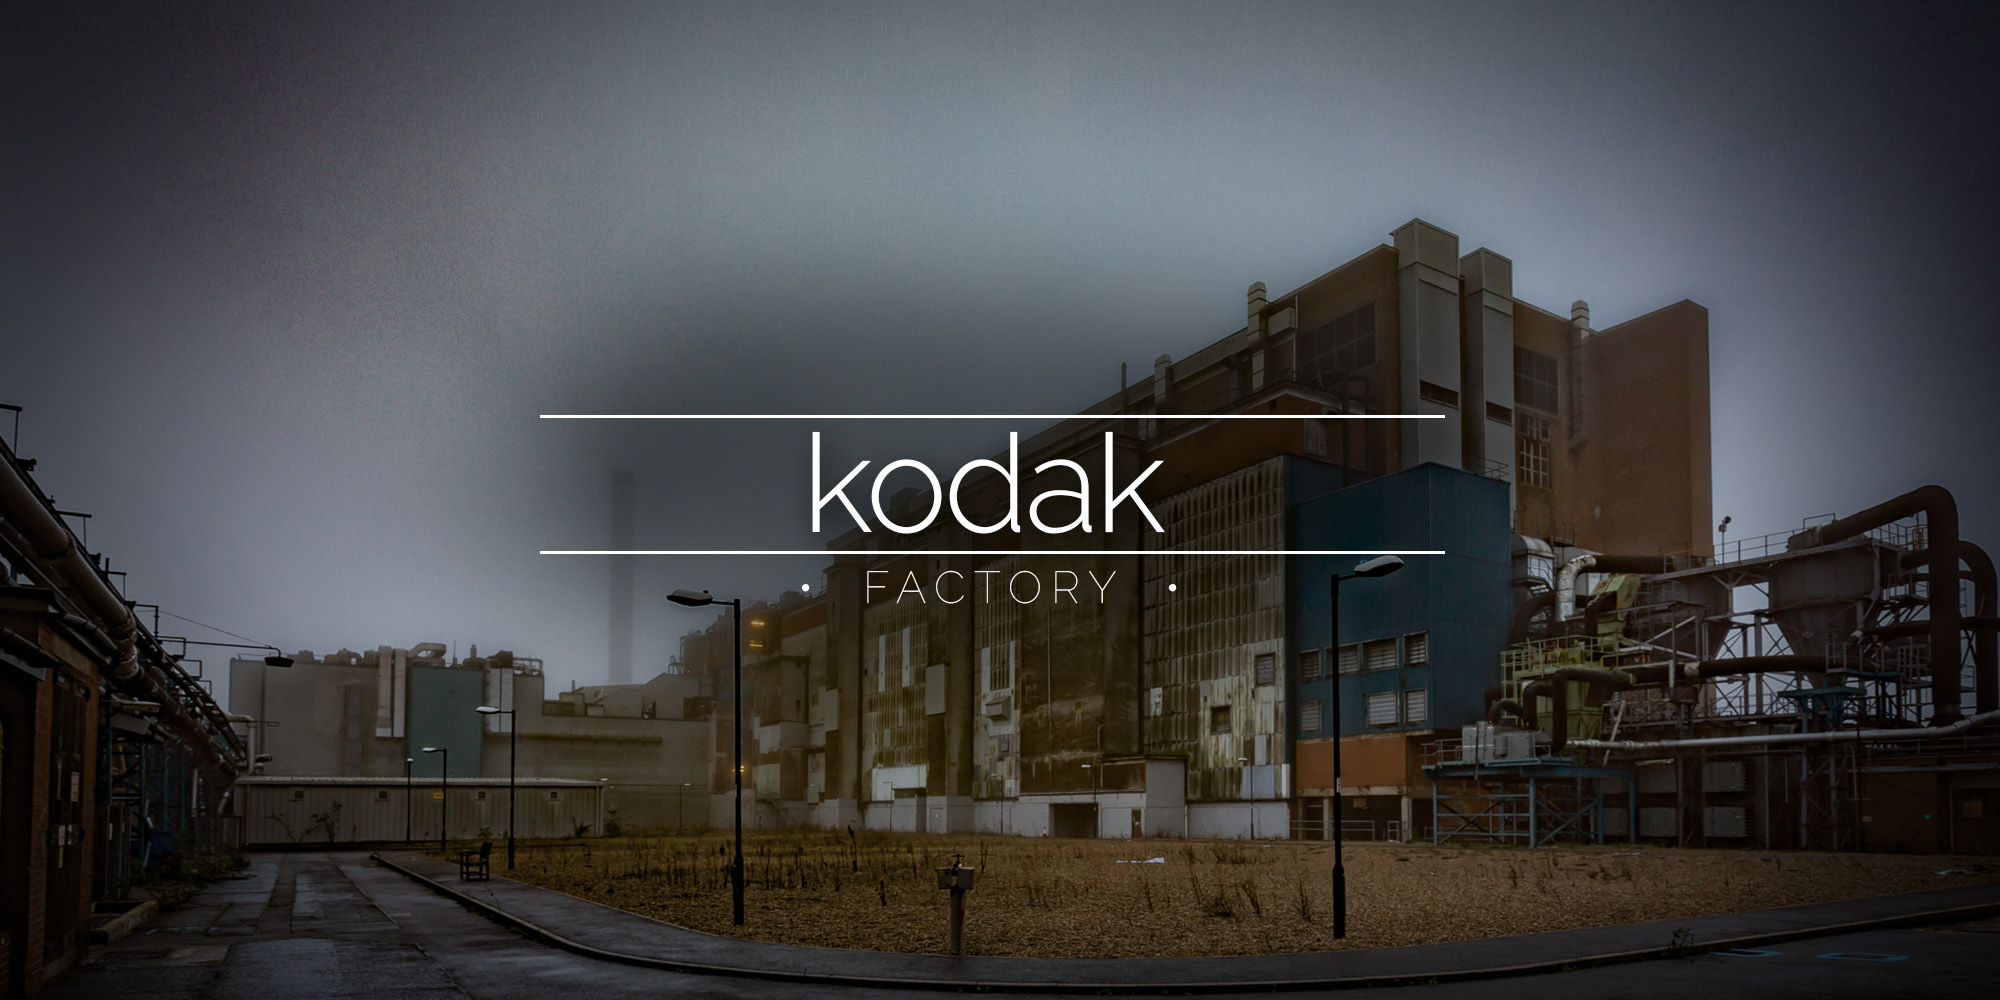 Kodak Factory, Harrow, London